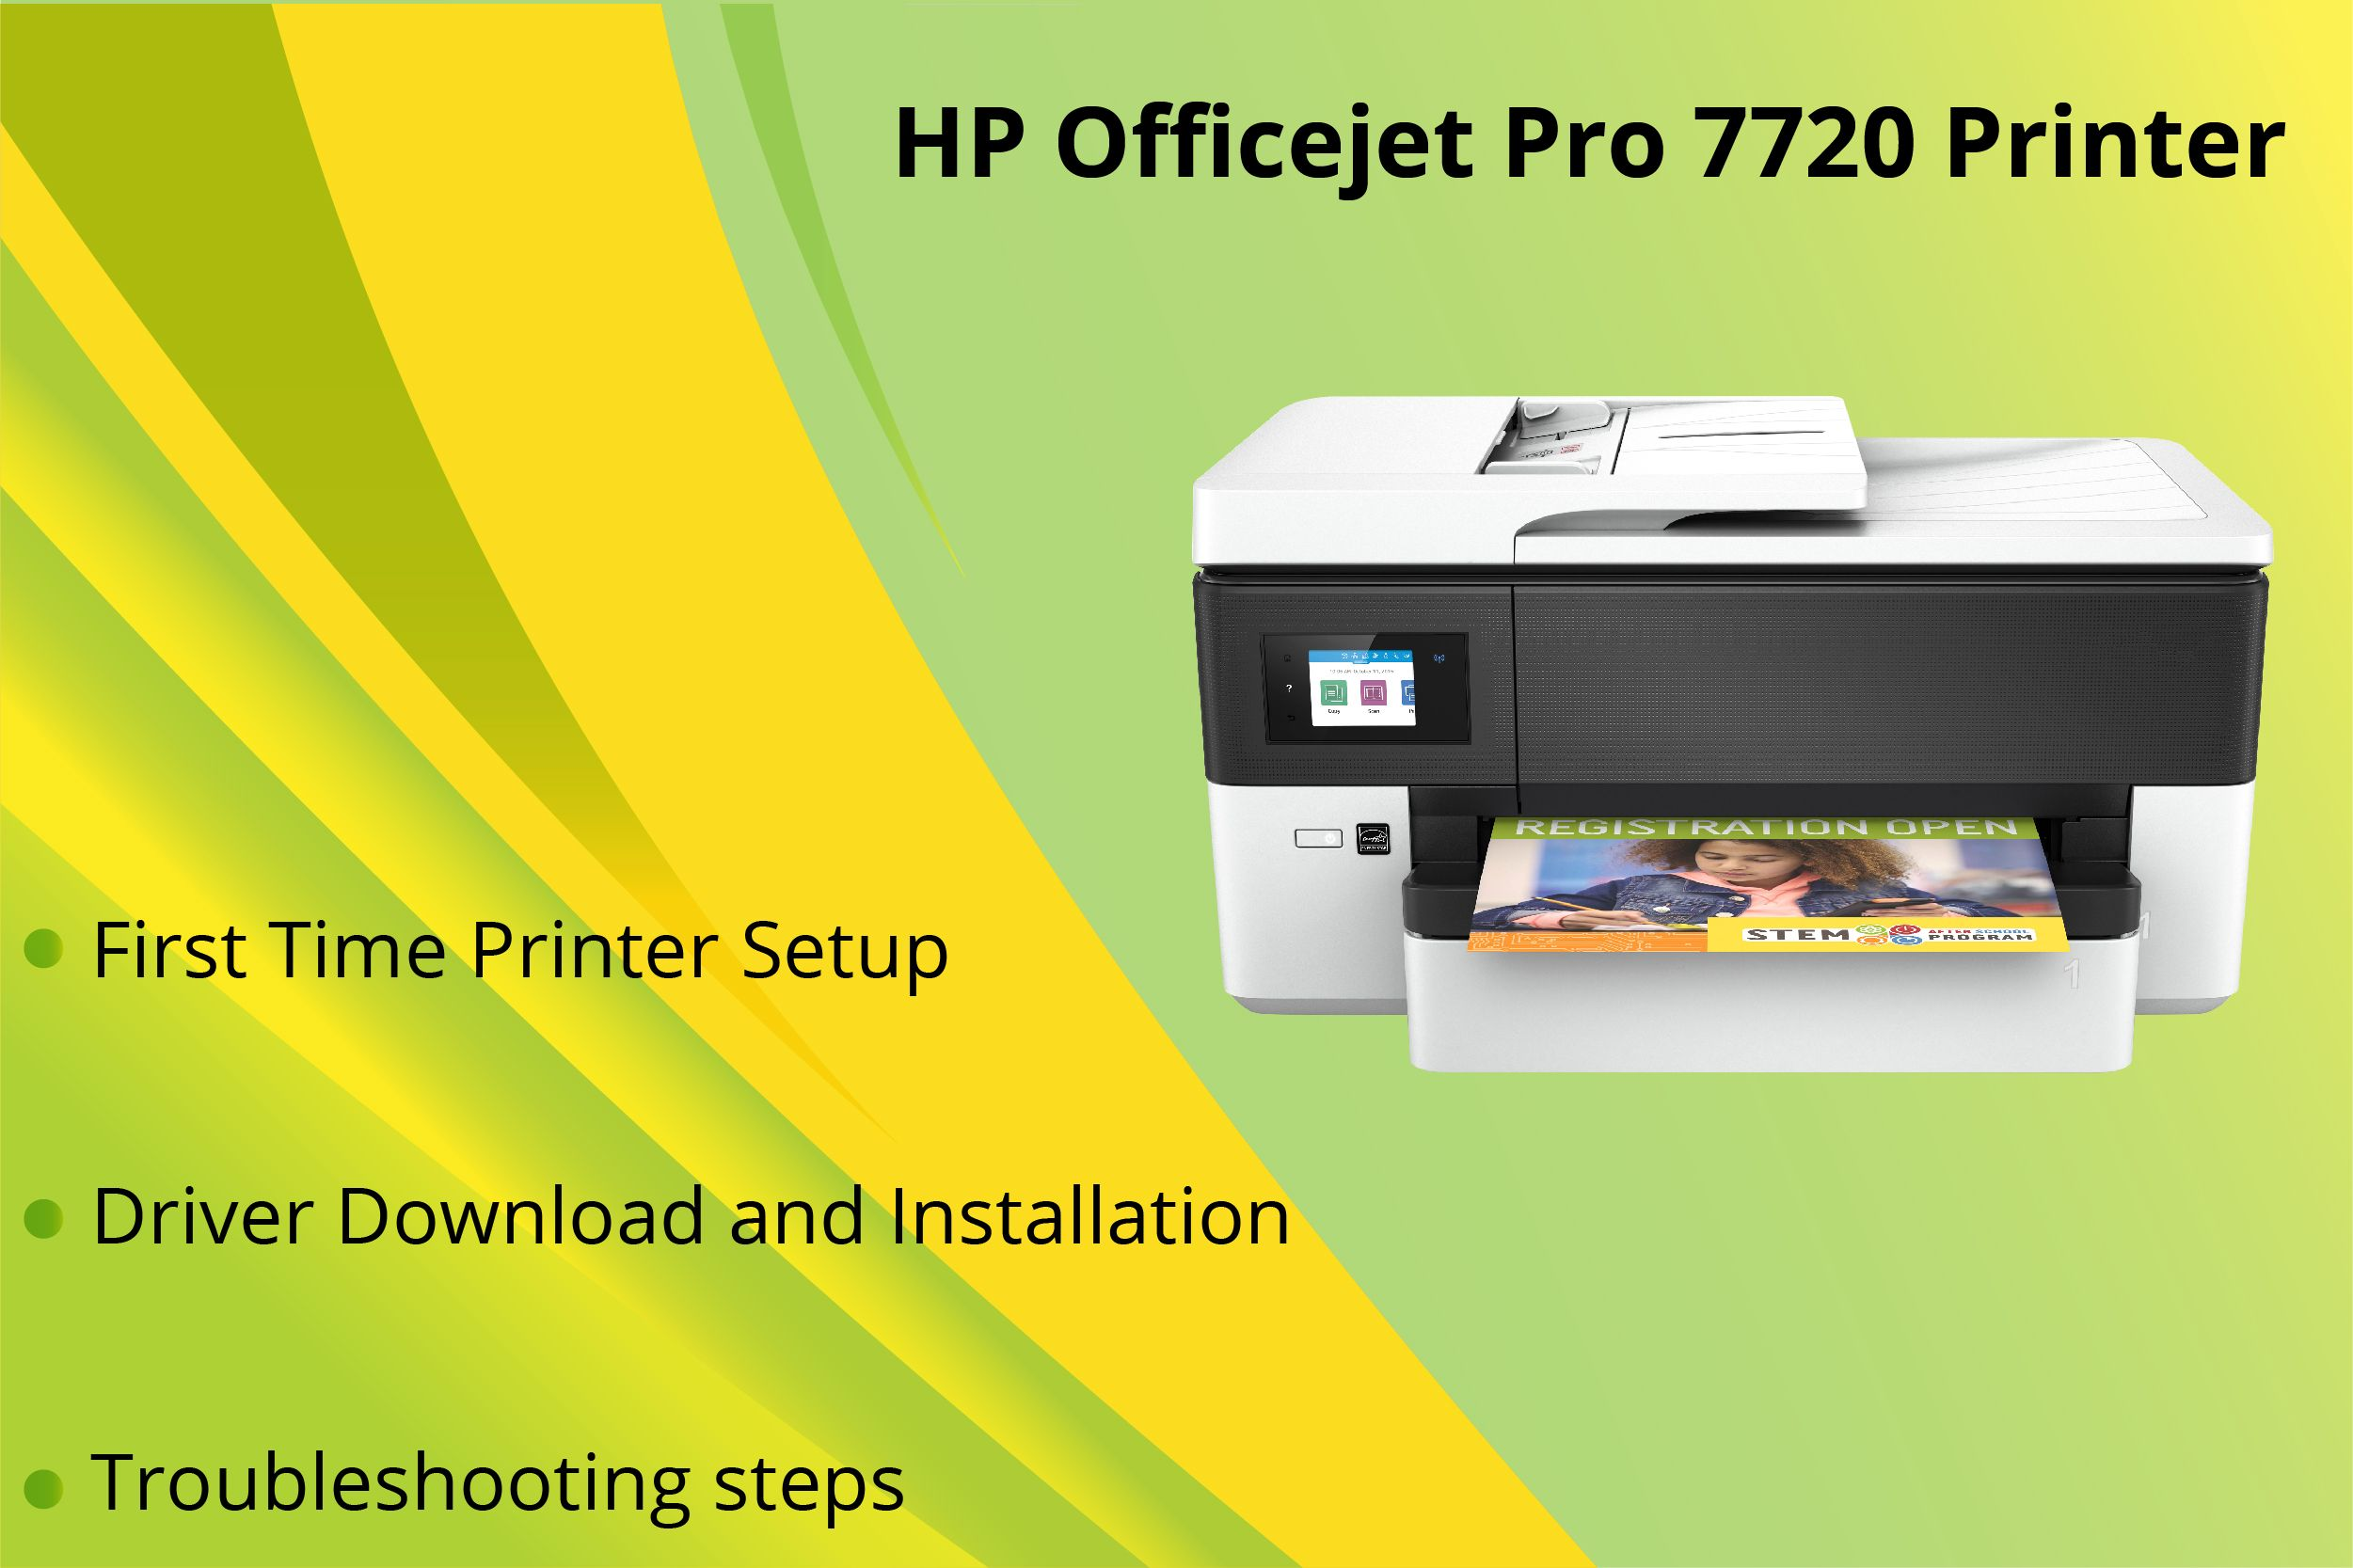 Here we are! Providing guidelines for Printer setup